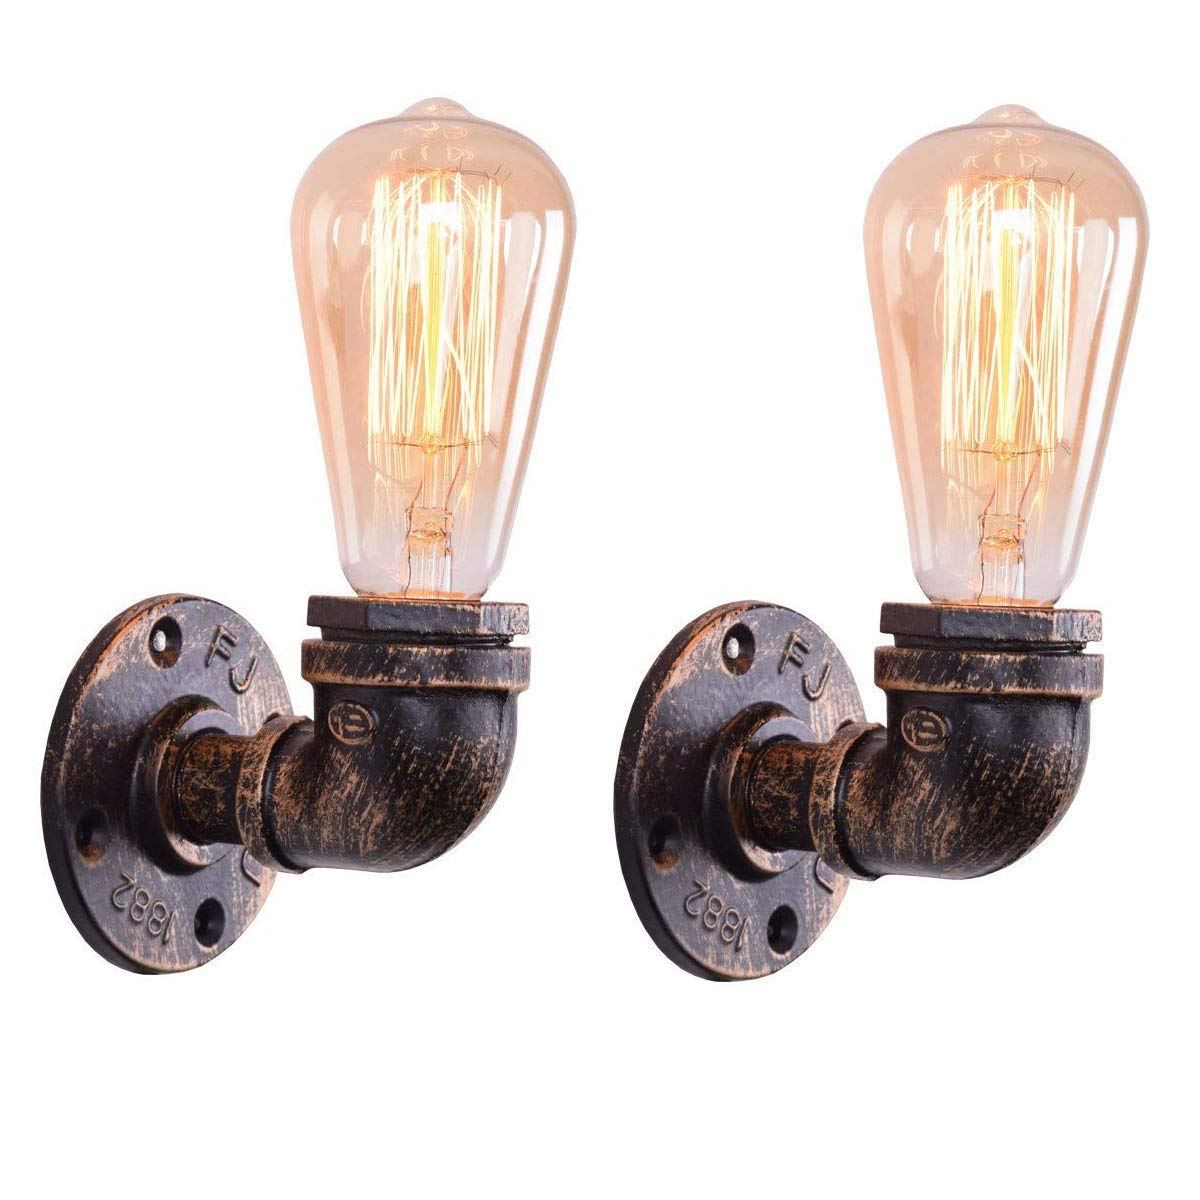 TZZ Industrial Steampunk Metal Vintage Single Head Metal Loft Pipe Wall Light Lamp Cafe Bar Wall Sconce E27 Lamp Base (Bulb not Included) (Size : 2 Sets)